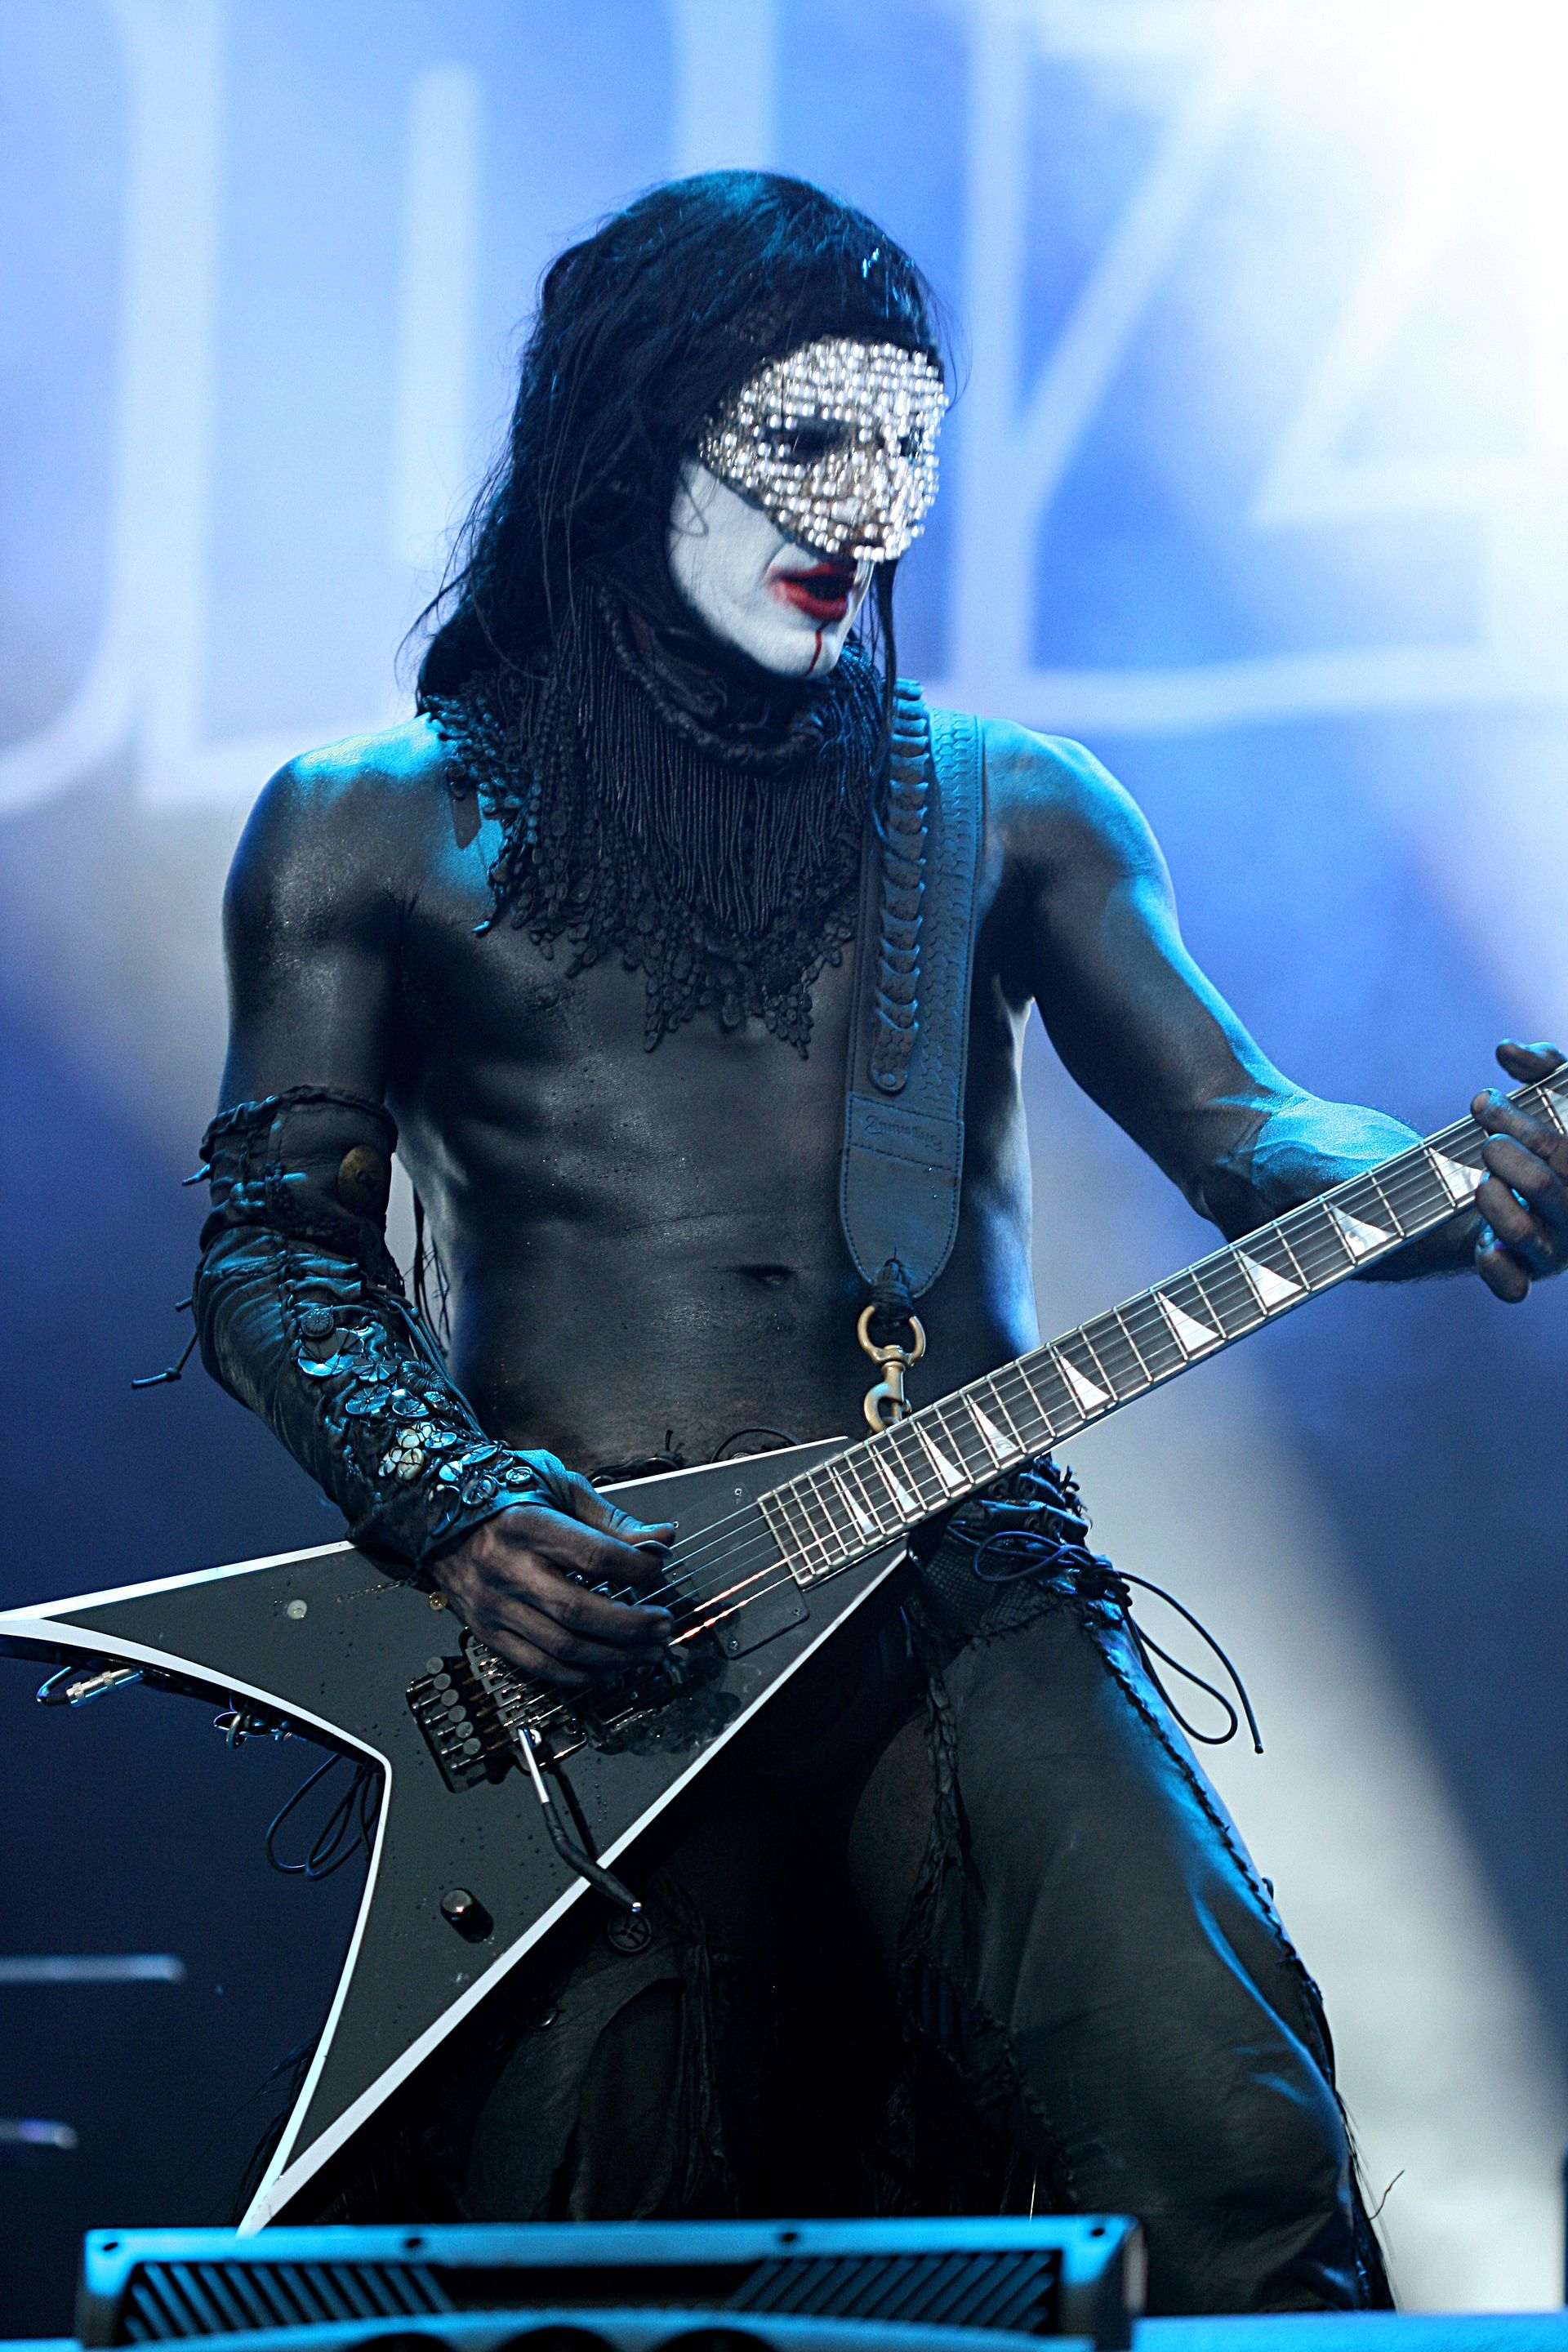 Terror Wallpaper Hd Wes Borland Wikipedia La Enciclopedia Libre